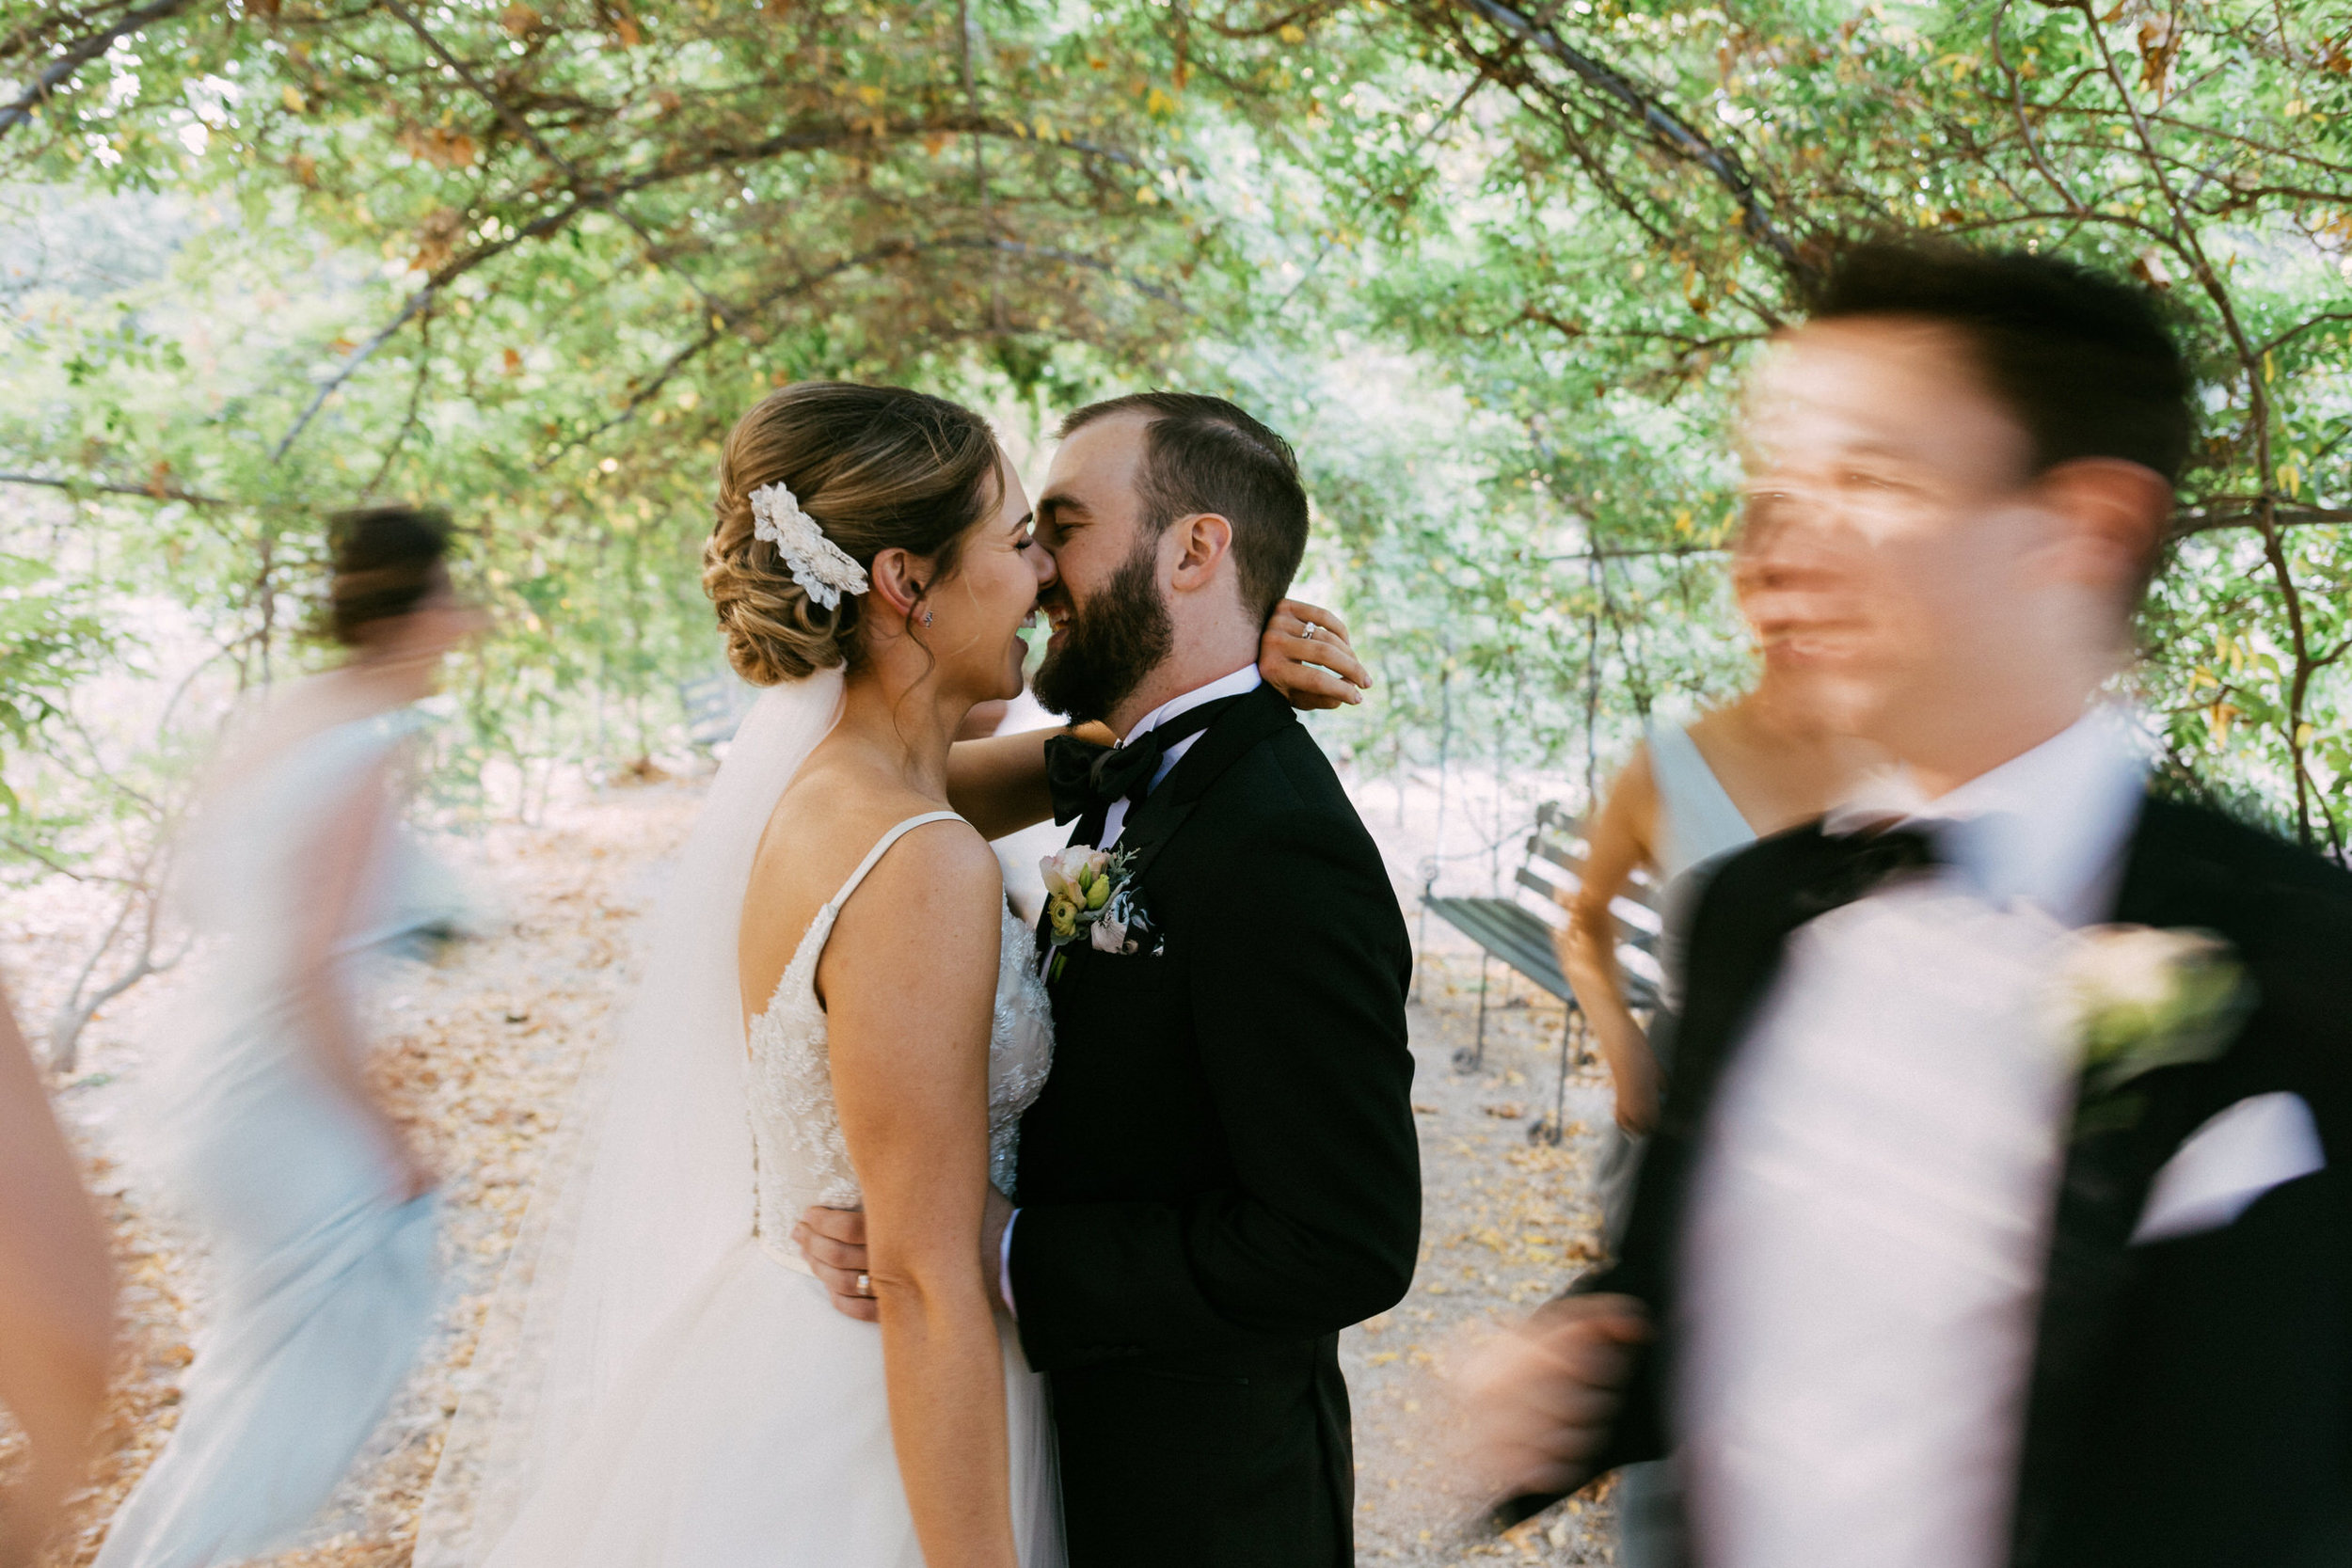 Adelaide Wedding 2019 096.jpg